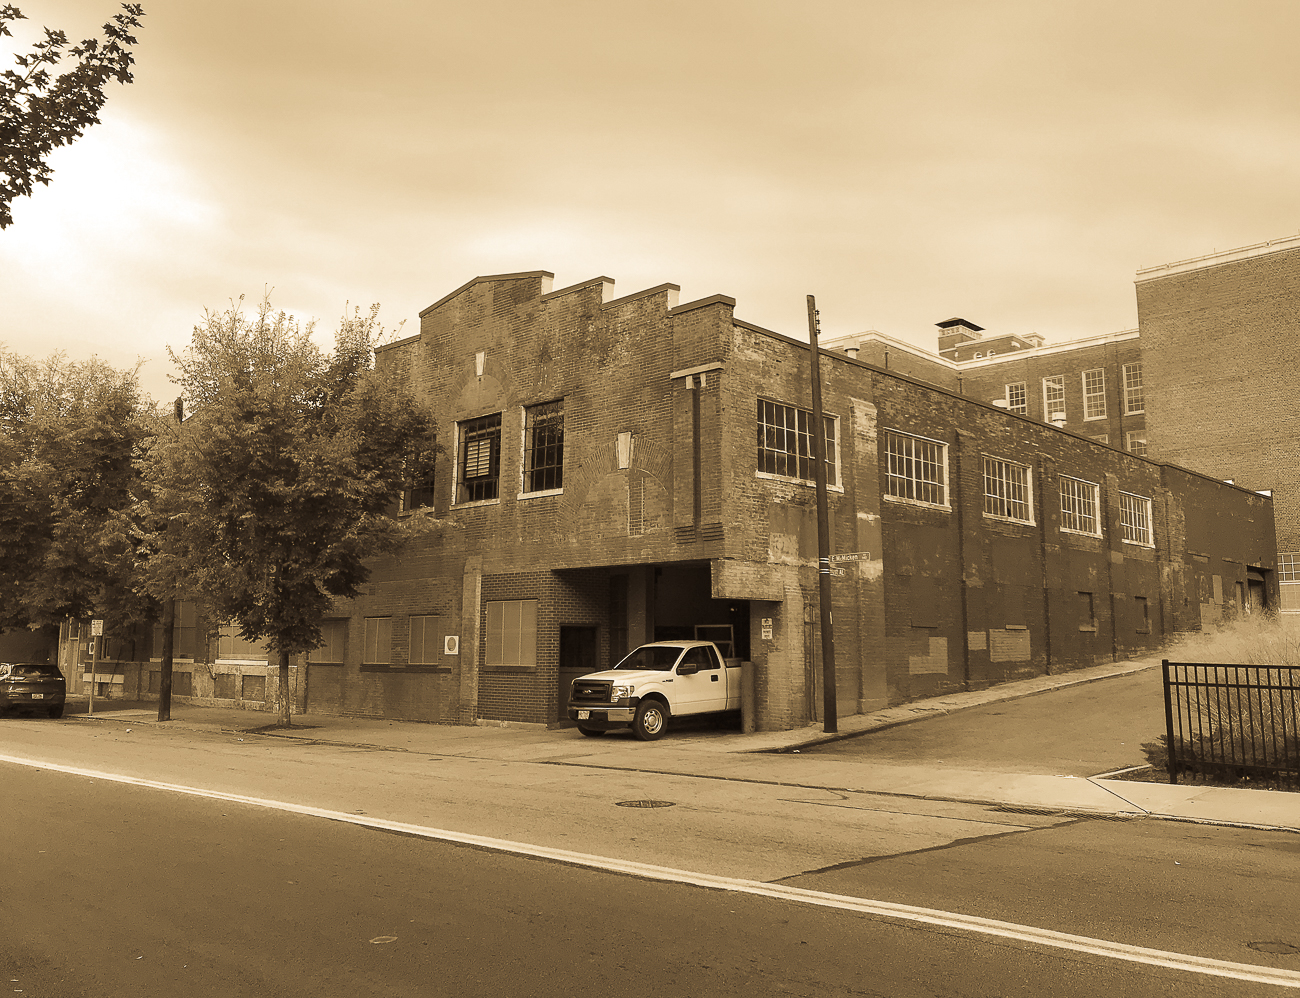 This building on McMicken Avenue once acted as the brewhouse for Bauer, Bach, and Crown Breweries. An underground tunnel beneath McMicken Ave connects the former brewhouse to the building occupied by startup Roadtrippers, which is across the street and also acted as part of the brewery operation during its heyday. Along with nearly every other brewery in town, the final brewery in the space, Crown, ended production with Prohibition. Today it is occupied by Superior Rubber Co. ADDRESS: 138 McMicken Ave (45202) / Image: Cincinnati Refined // Published: 11.5.17